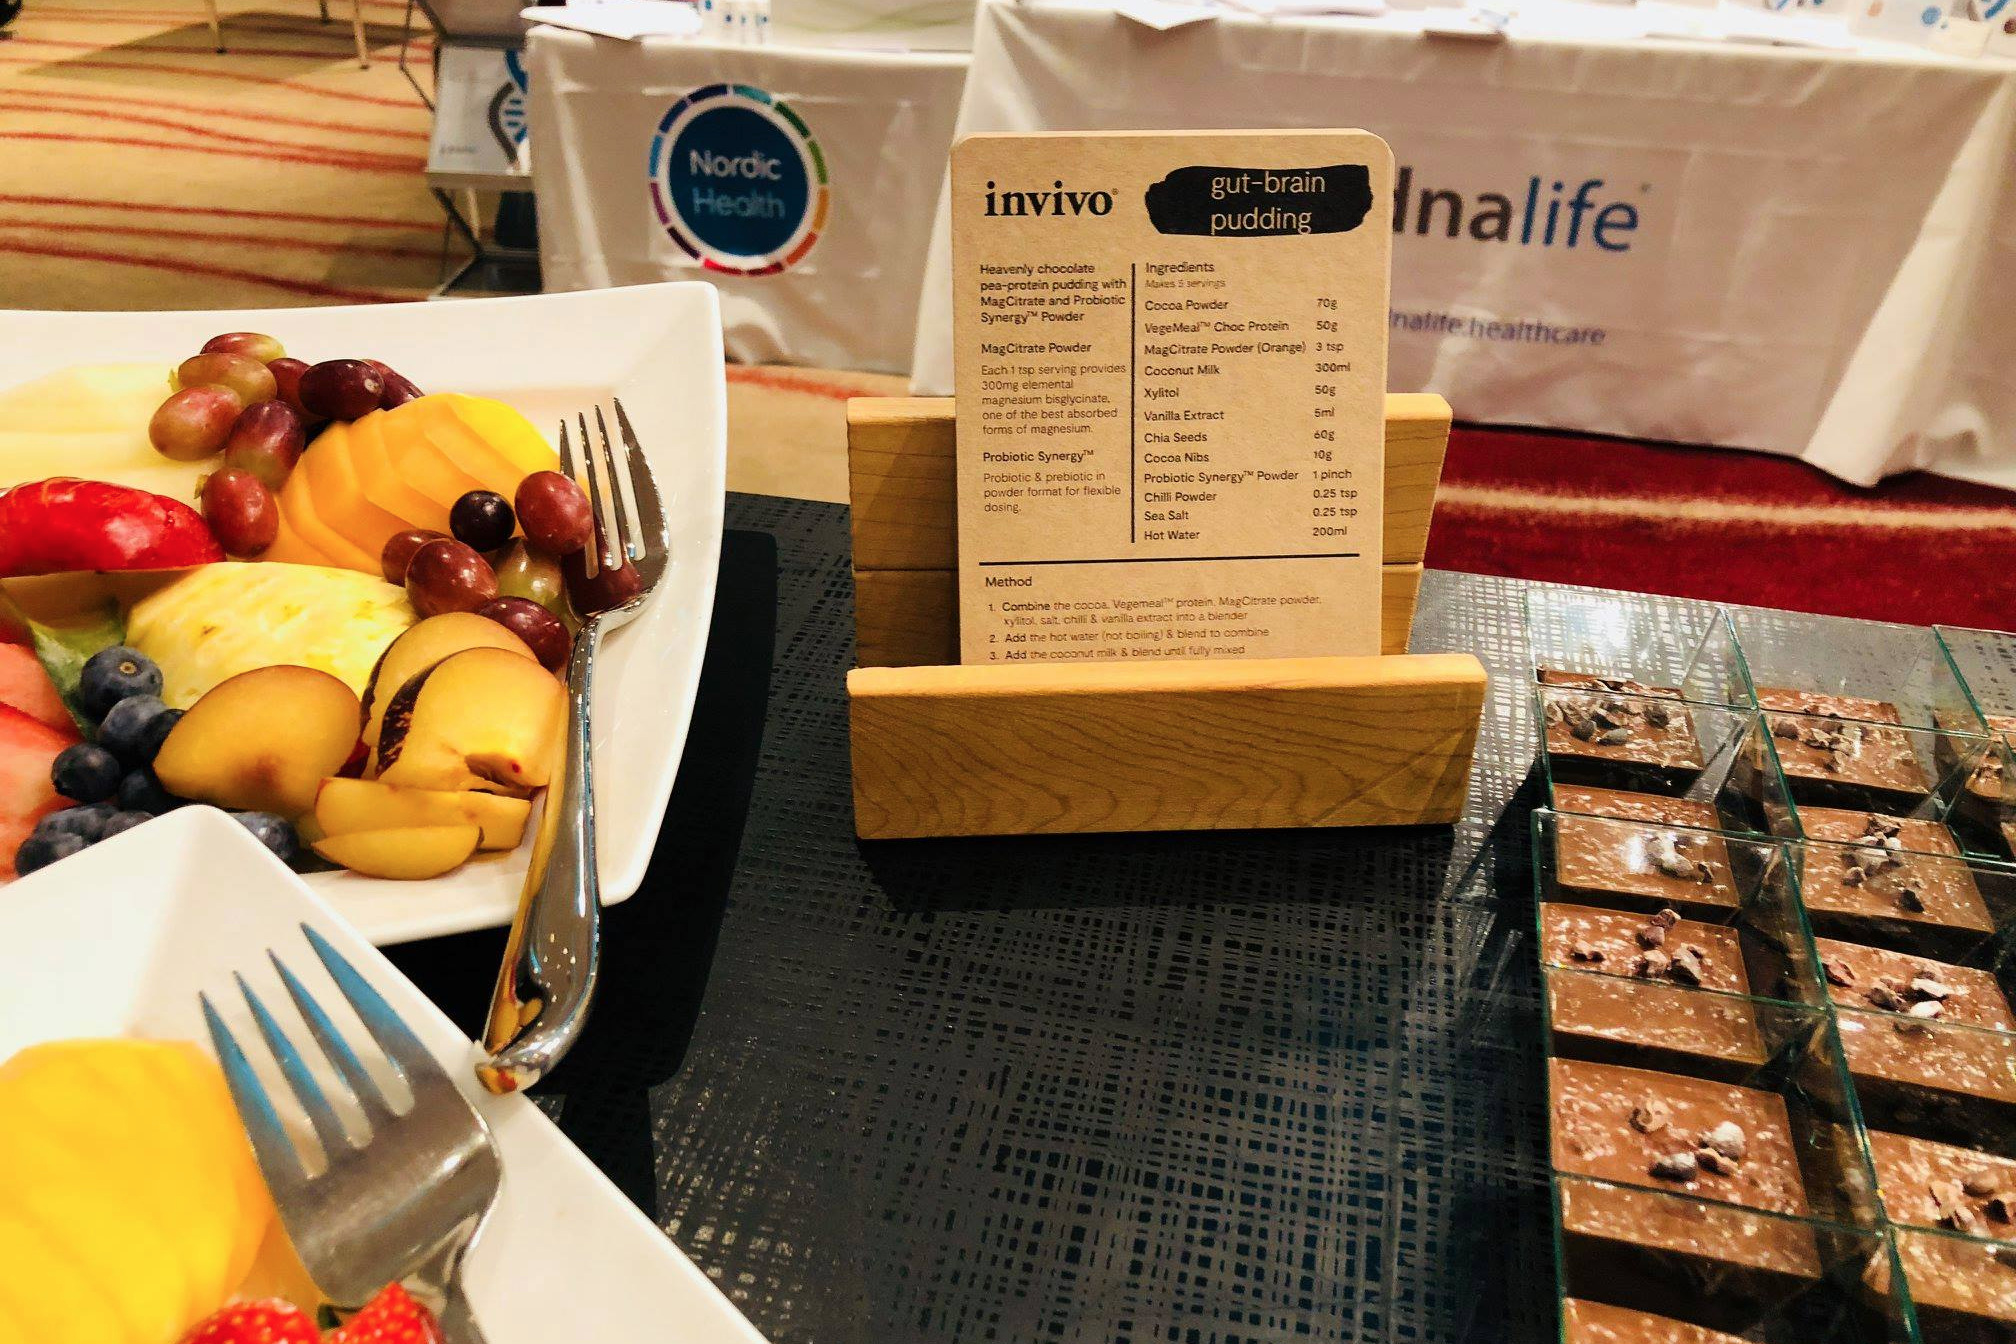 Park Plaza London Riverbank chefs prepared Invivo's 'gut-brain' puddings for delegates at the 2018 AFMCP-UK, containing chocolate pea protein, MagCitrate and Probiotic Synergy powder.